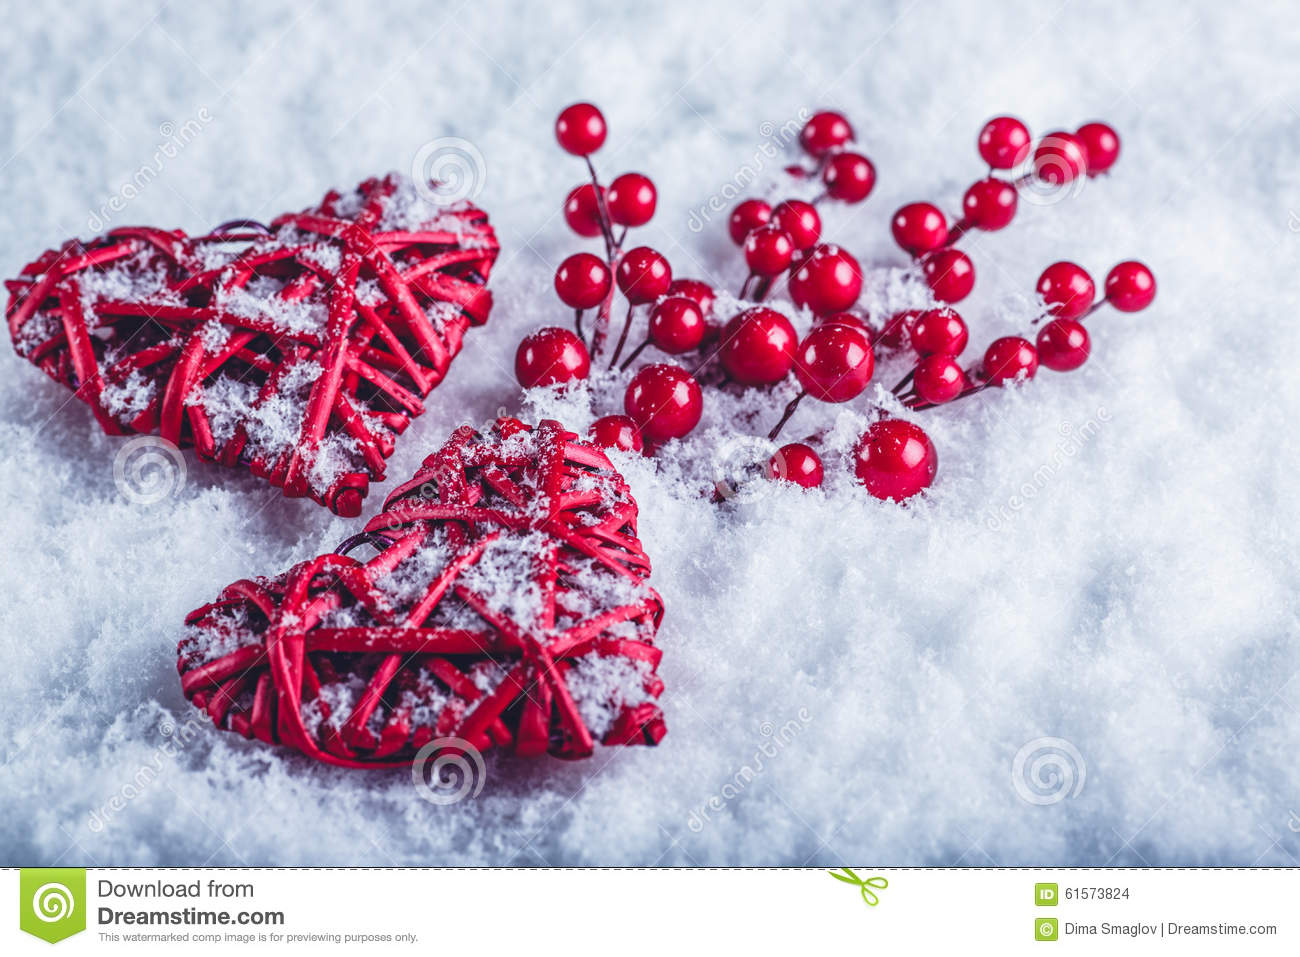 Beautiful christmas snow pictures the snow on christmas day in - Two Beautiful Vintage Red Hearts With Mistletoe Berries On A White Snow Background Christmas